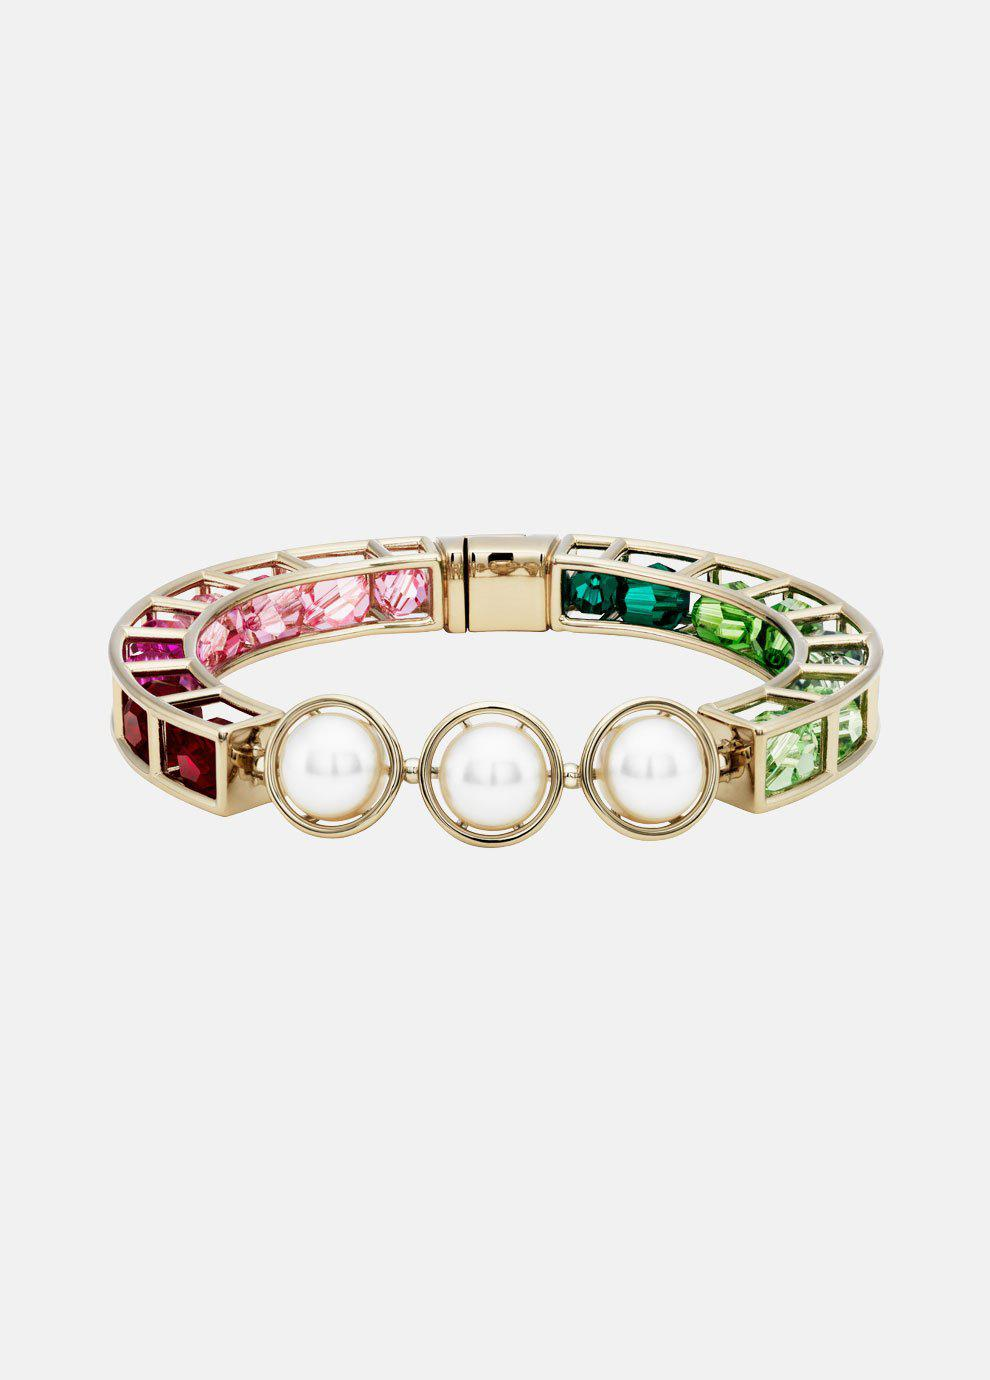 Mary Katrantzou Nostalgia Bangle Light Multi c2c0Ztox